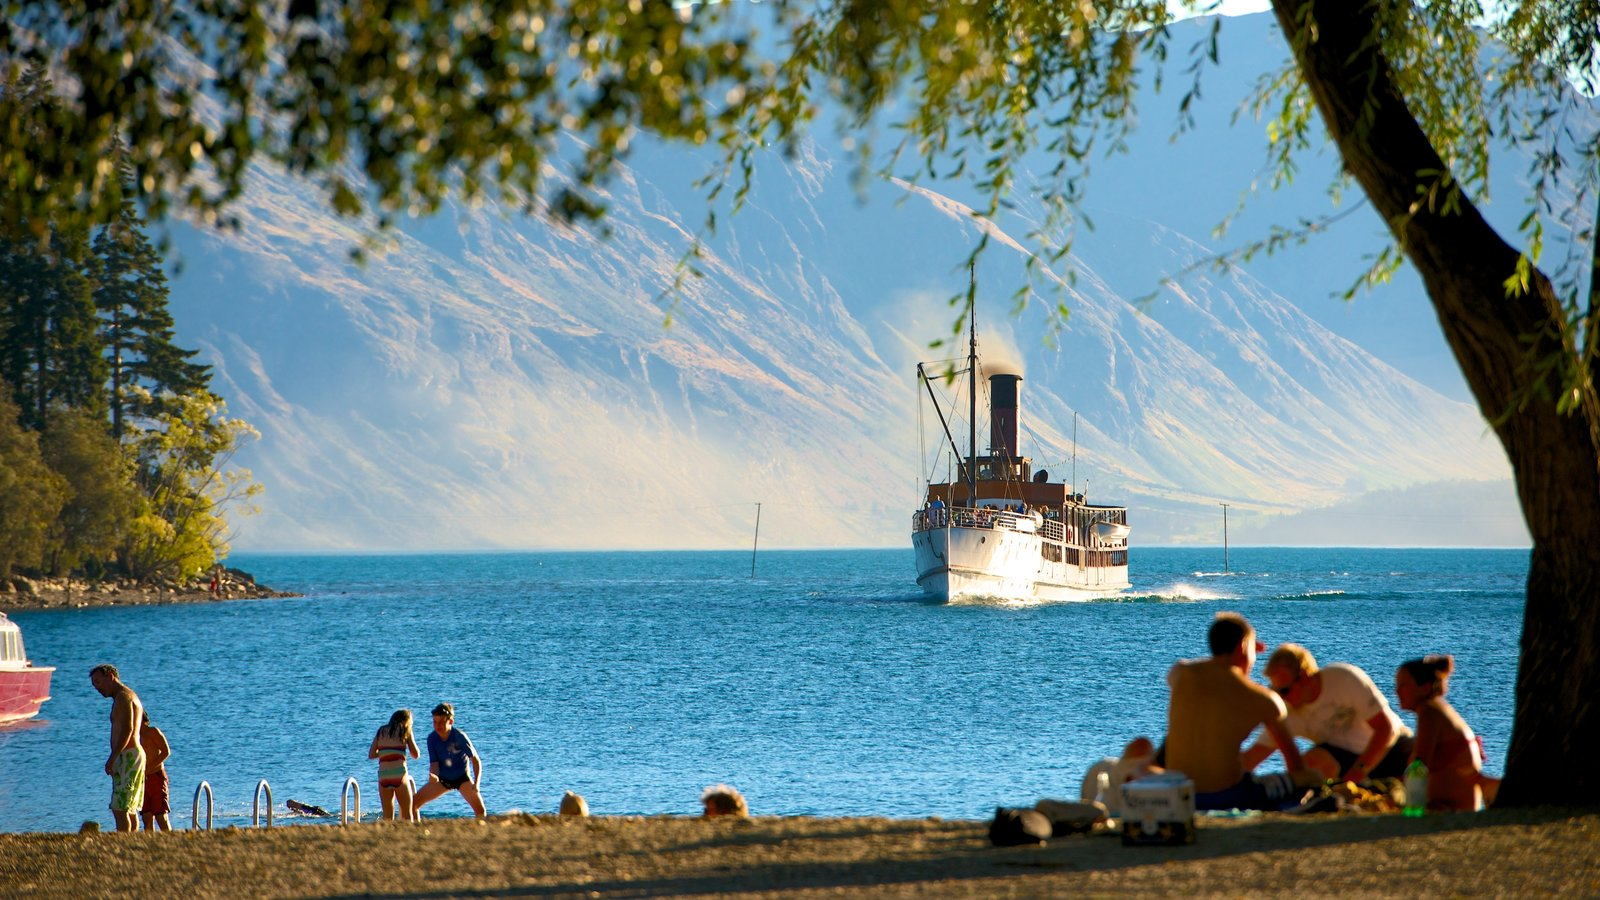 TSS Earnslaw Steamship showing picnicking, a bay or harbour and a sandy beach